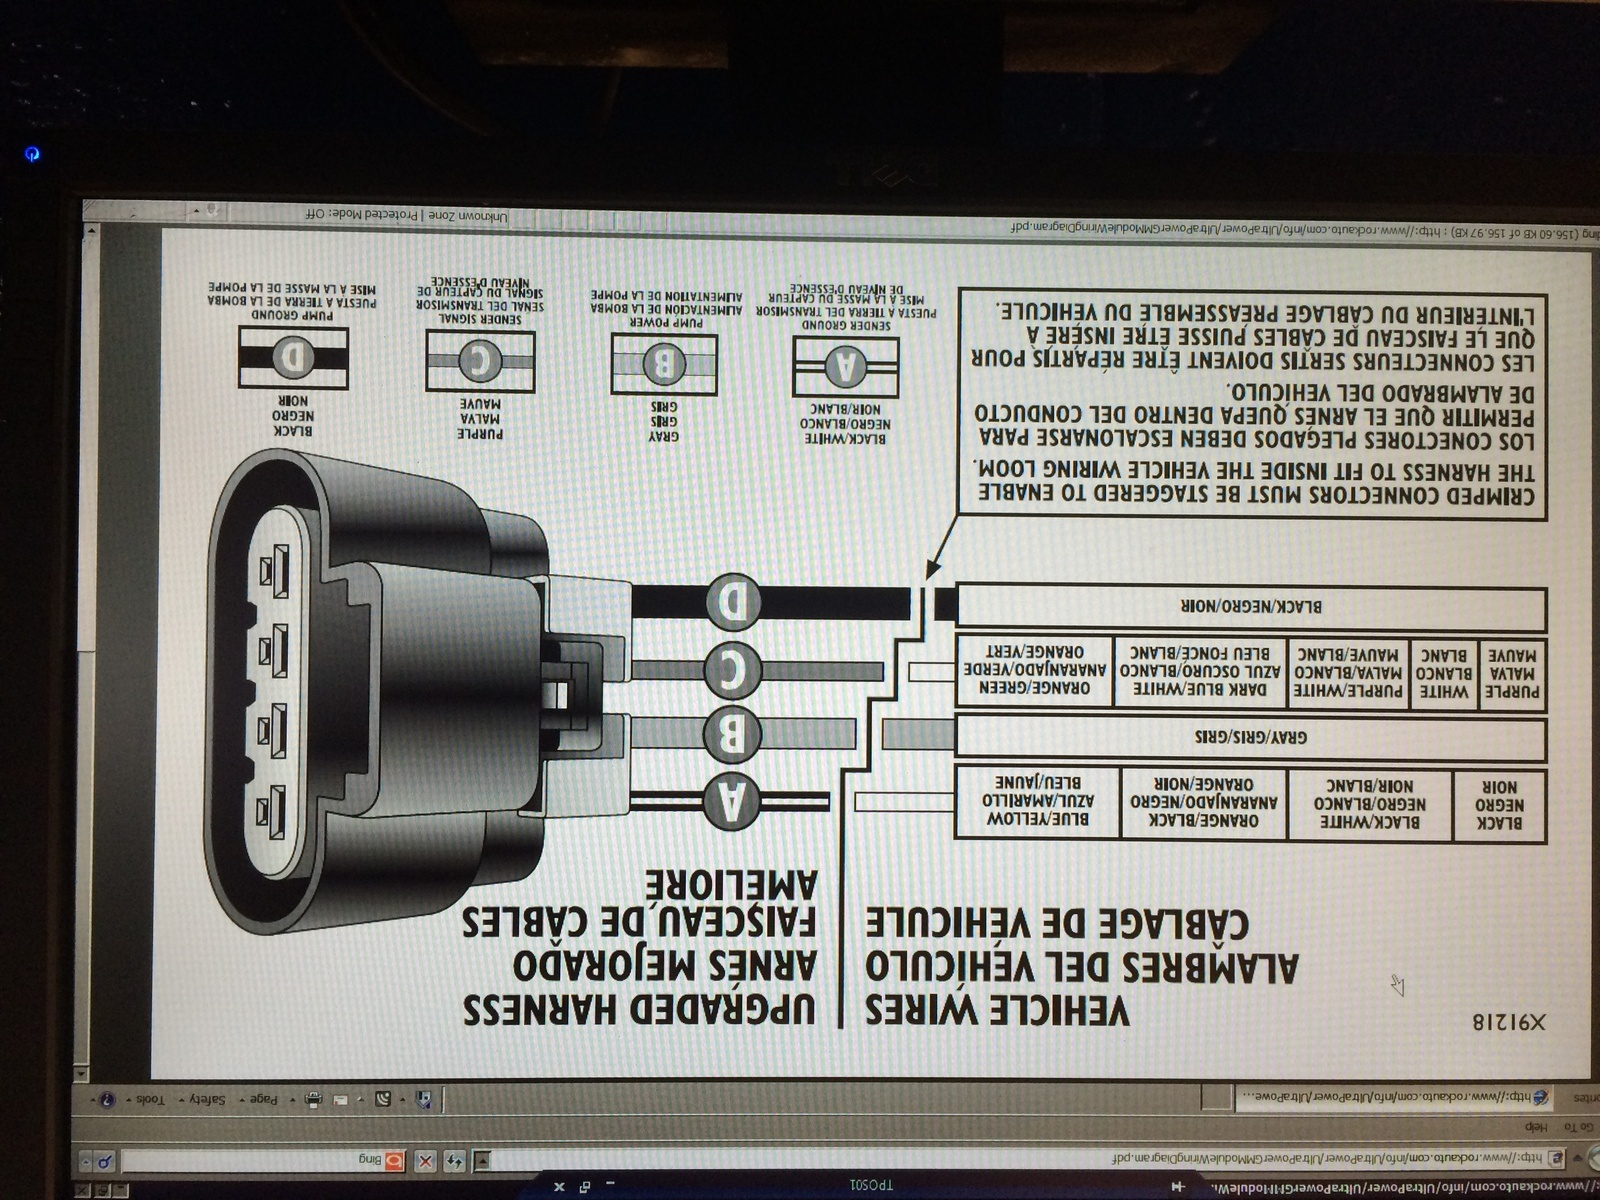 97 Dodge Ram Plug Diagram Manual Of Wiring 2003 Spark Wire Gmc Sierra 1500 Questions Fuel Pump Not Engaging On 1998